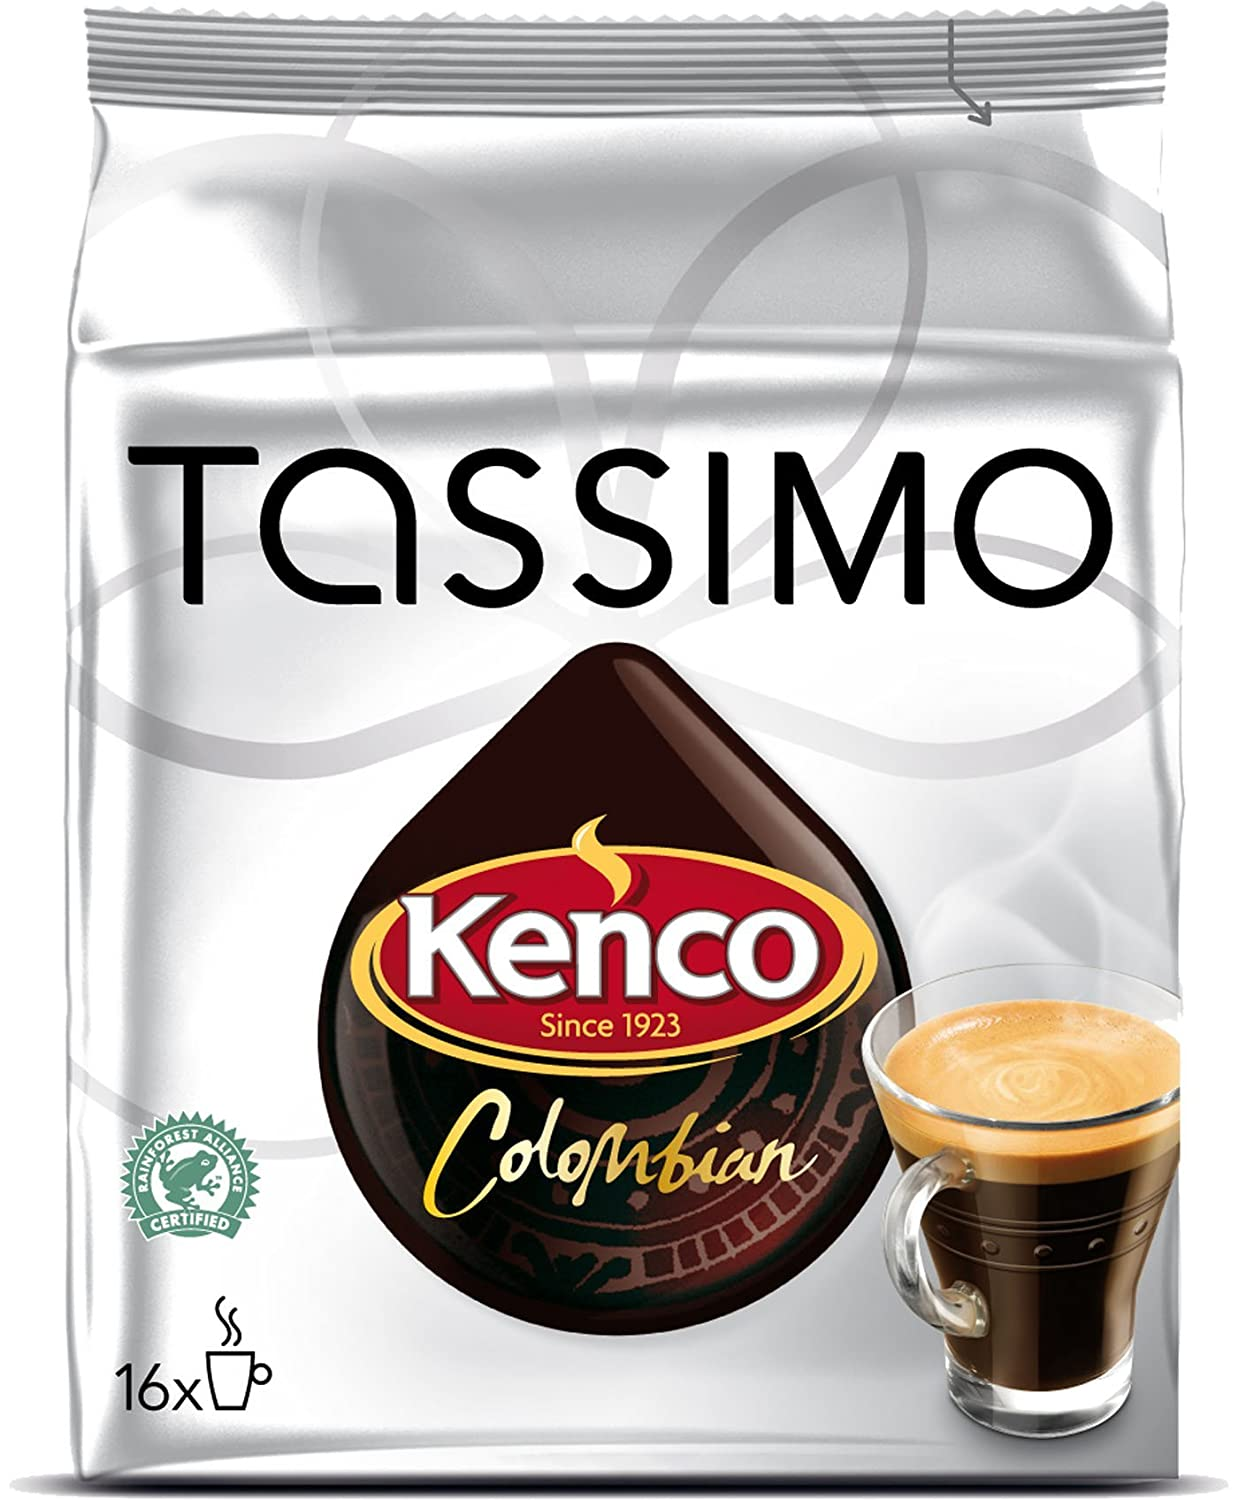 Tassimo Kenco Colombian Coffee T-Discs: Amazon.com: Grocery ...